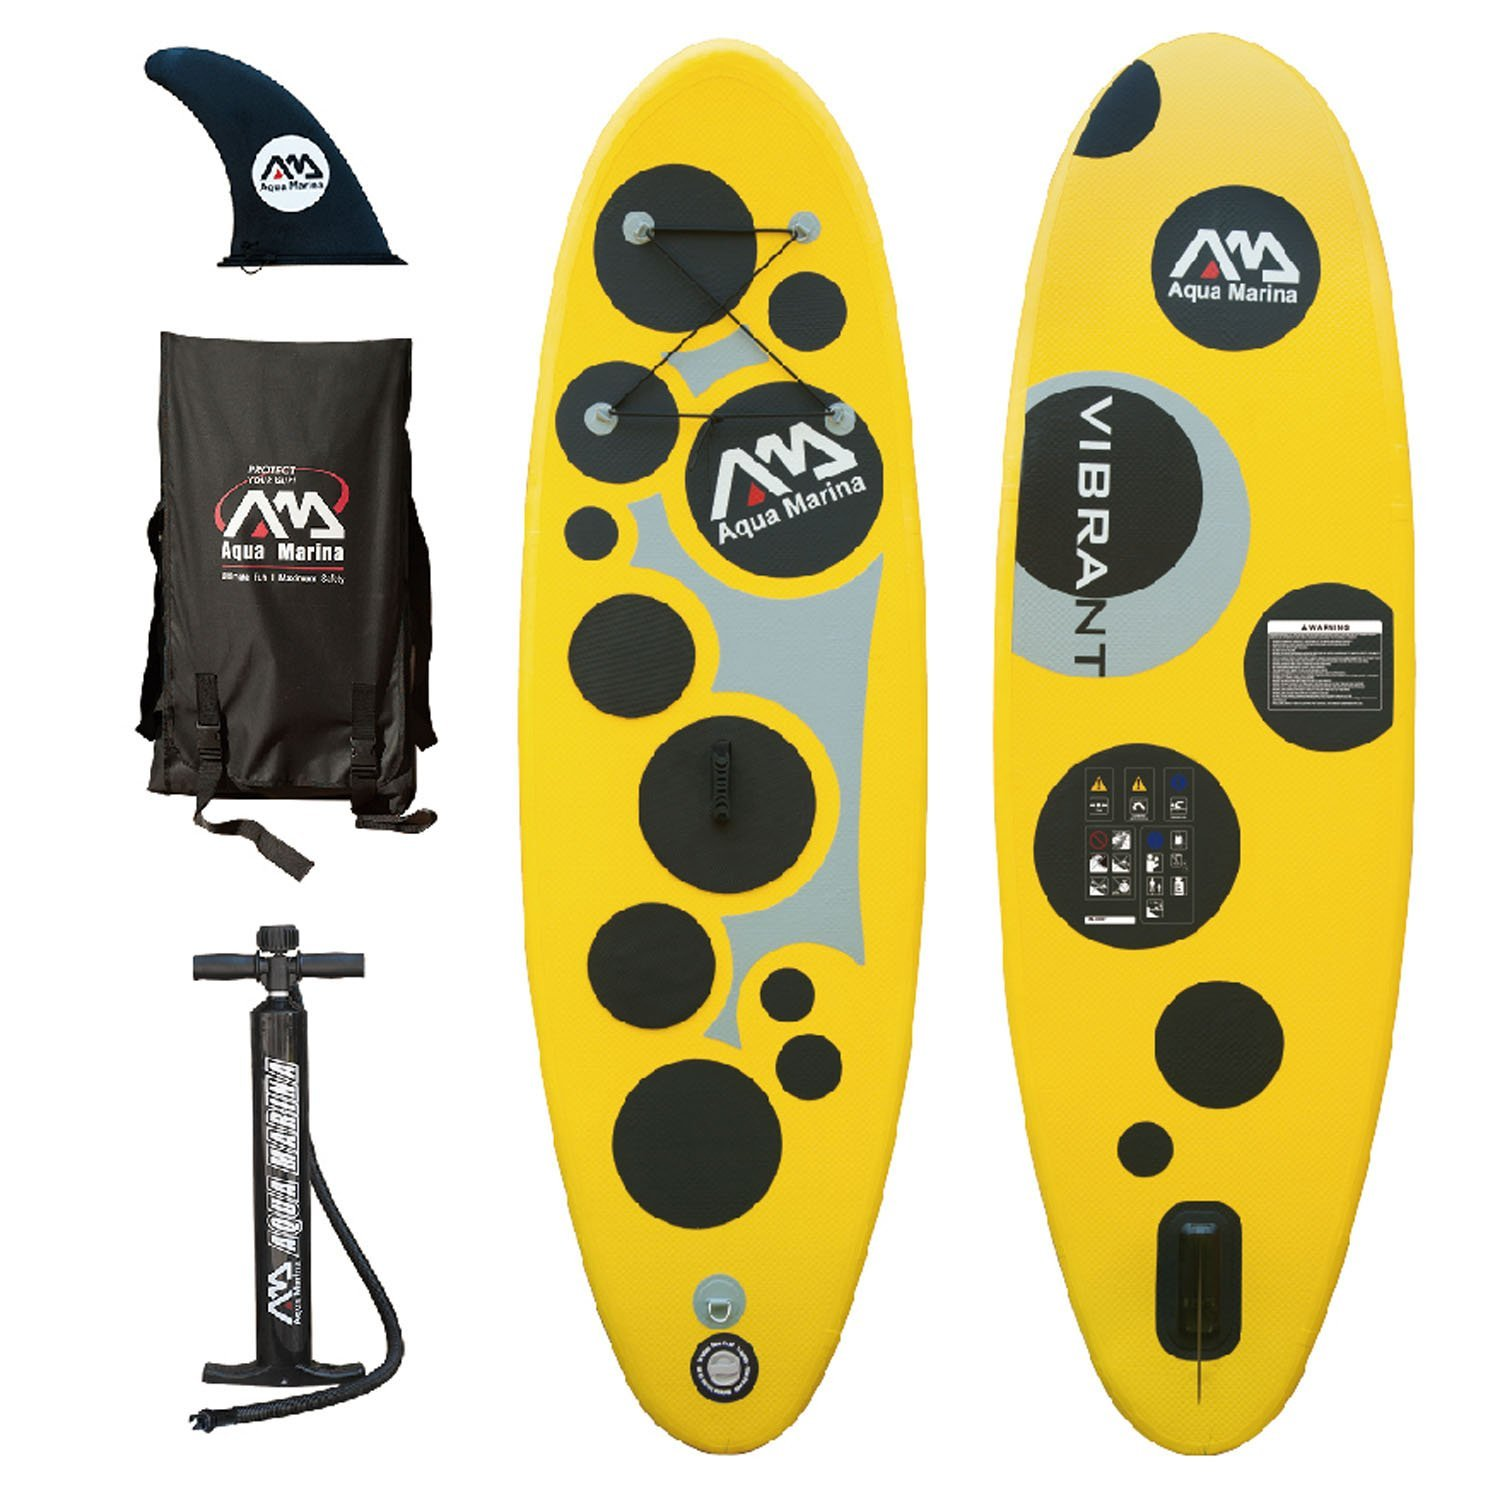 Aqua Marina Inflatable Vibrant Paddle Board For Kids